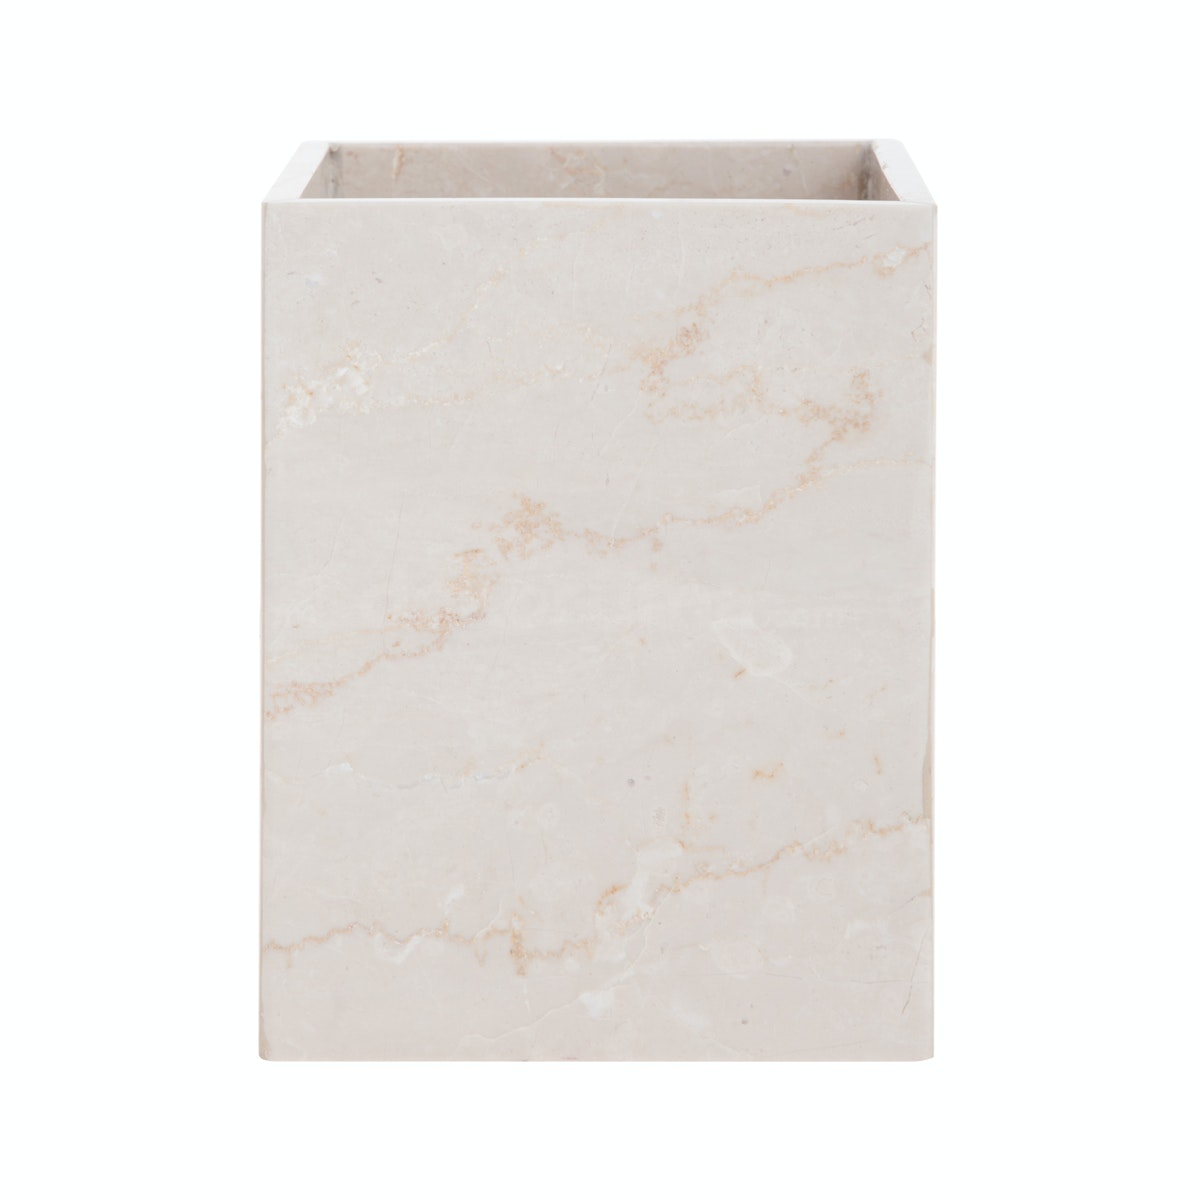 Marble & Co Aperto Marble Box (Large) Krem